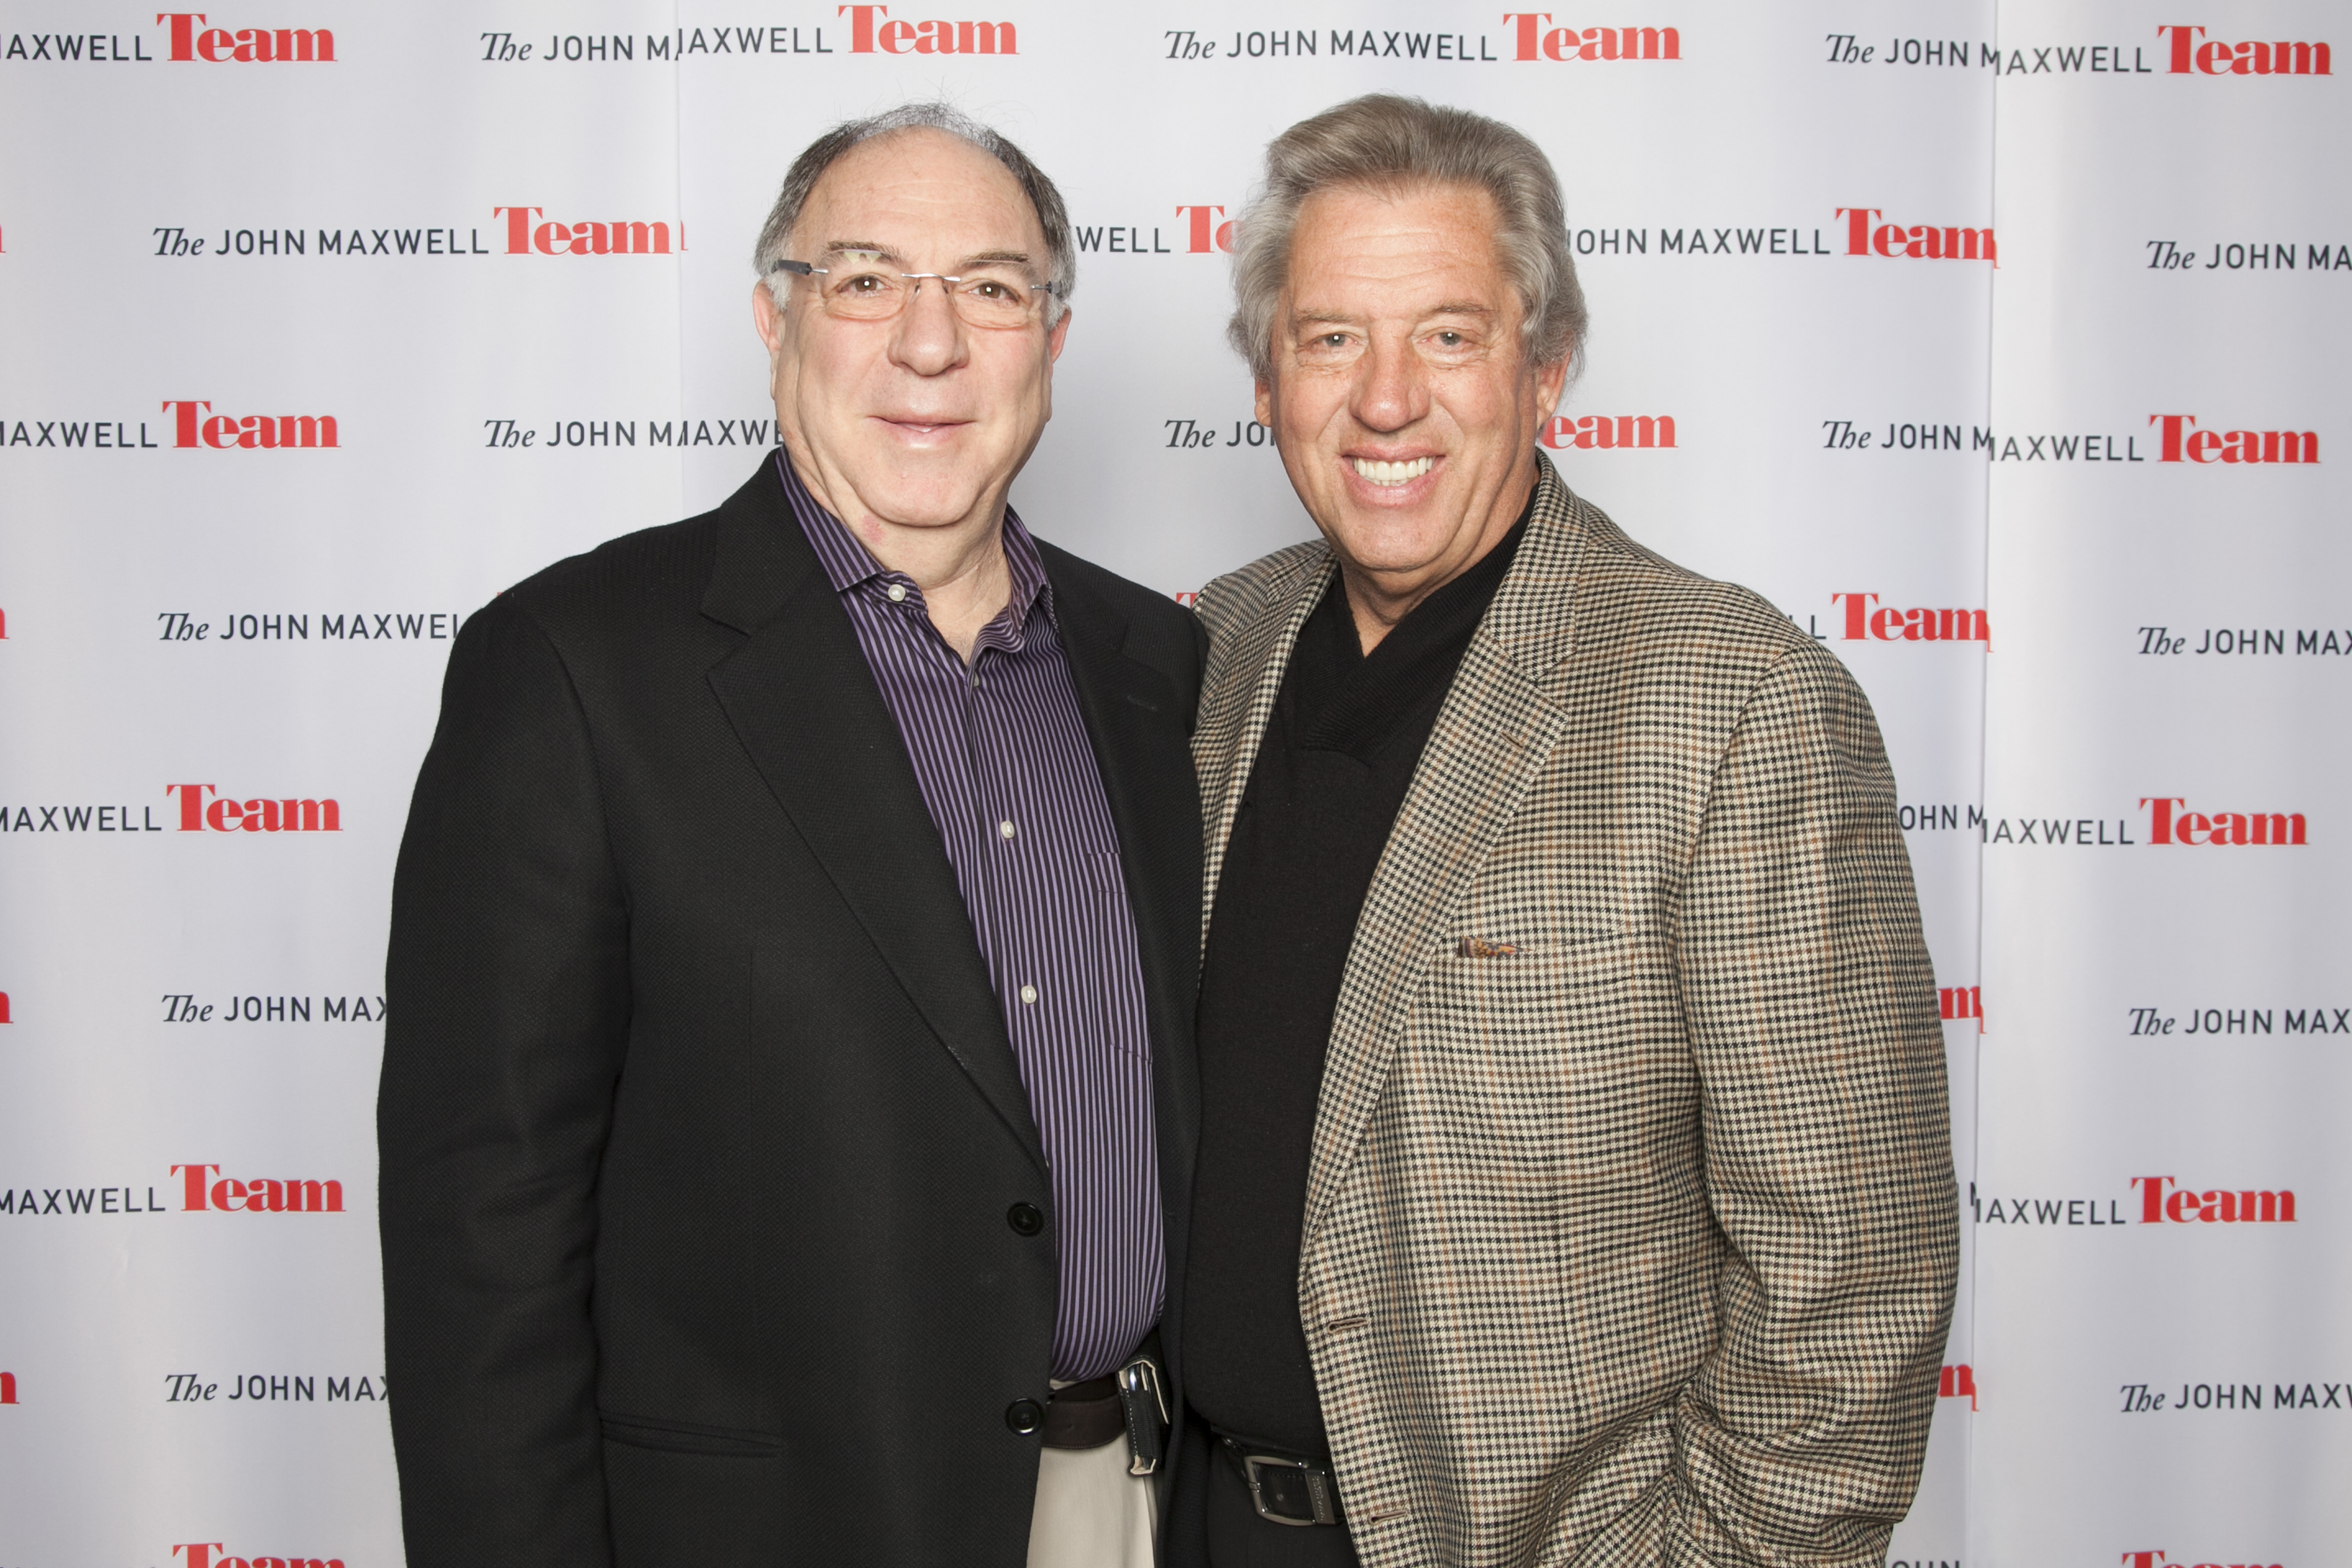 Norman S Cohen with John C Maxwell